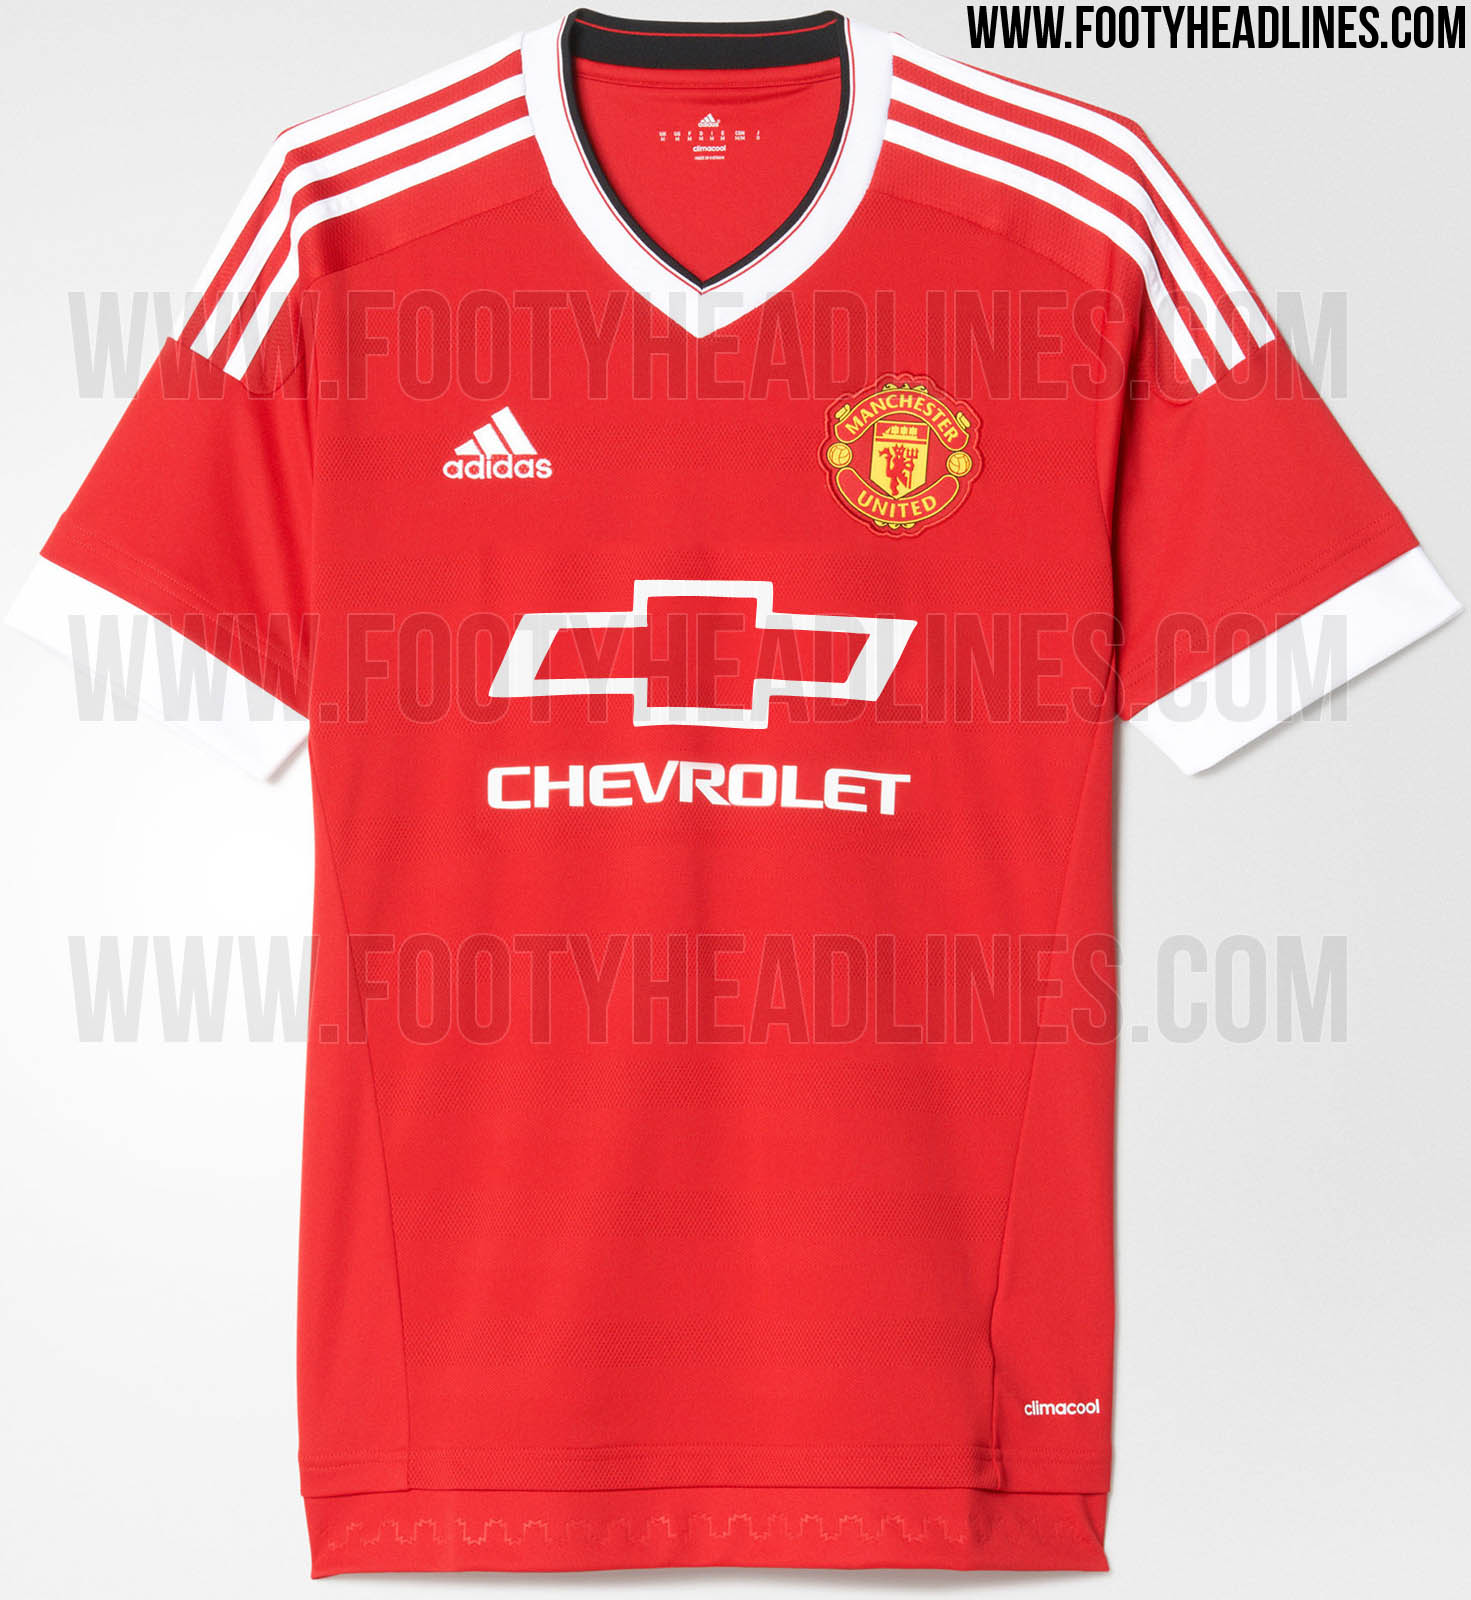 Adidas Manchester United 1516 Kit with Classic Sponsors  Footy